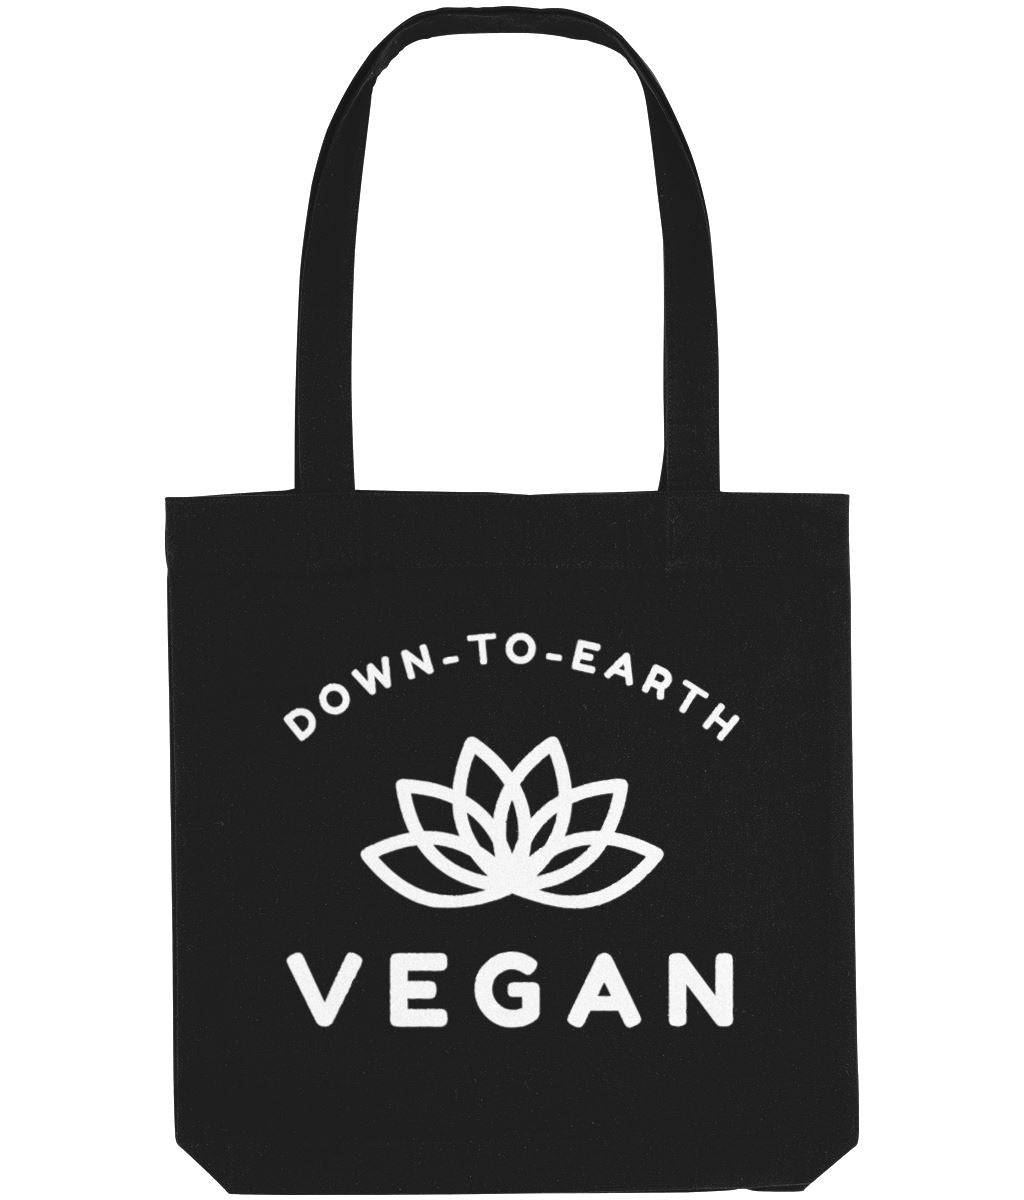 """Down-To-Earth Vegan"" - Those Vegan Guys Tote Bag - Dark Colours Clothing Vegan Original Black"